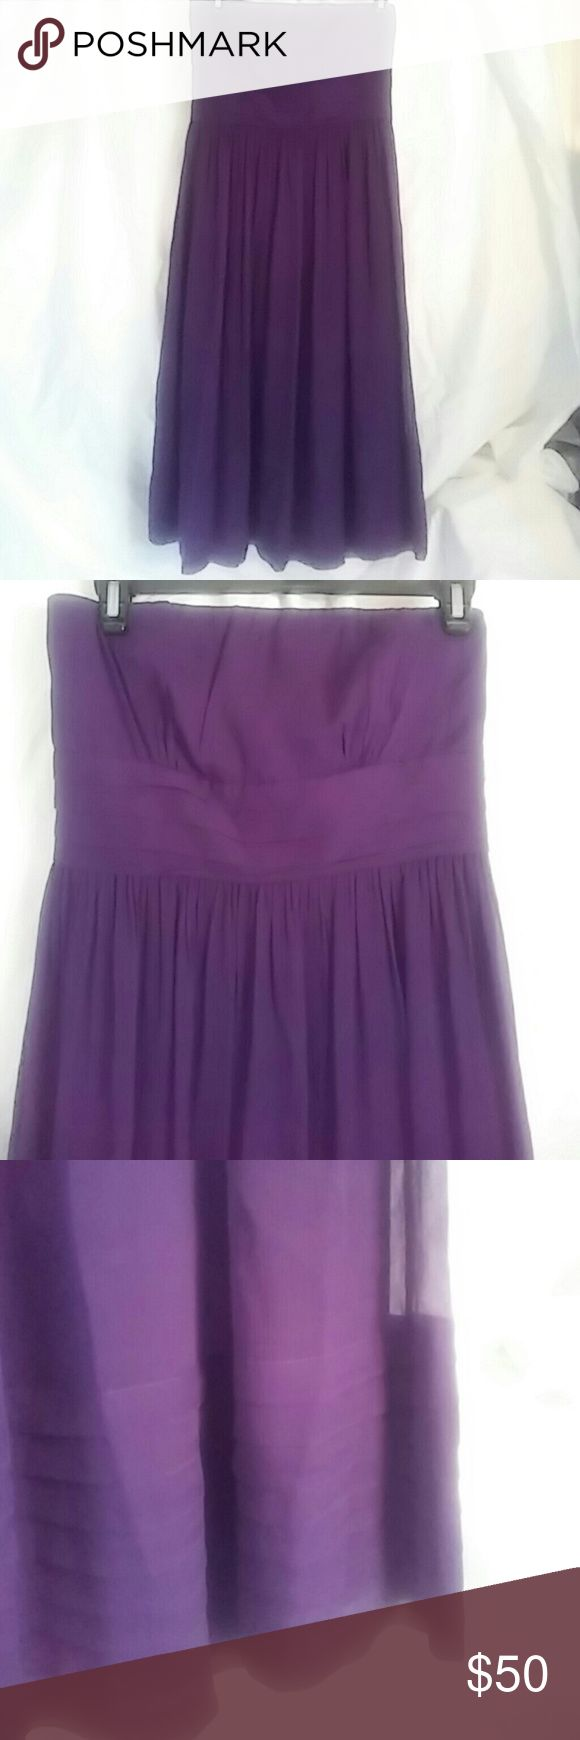 J. Crew 100% silk strapless purple party dress Wear it on girl's night out, wedding, beach, parties, or wherever you want to draw attention. Gorgous quality strapless dress. NWOT J. Crew Dresses Midi